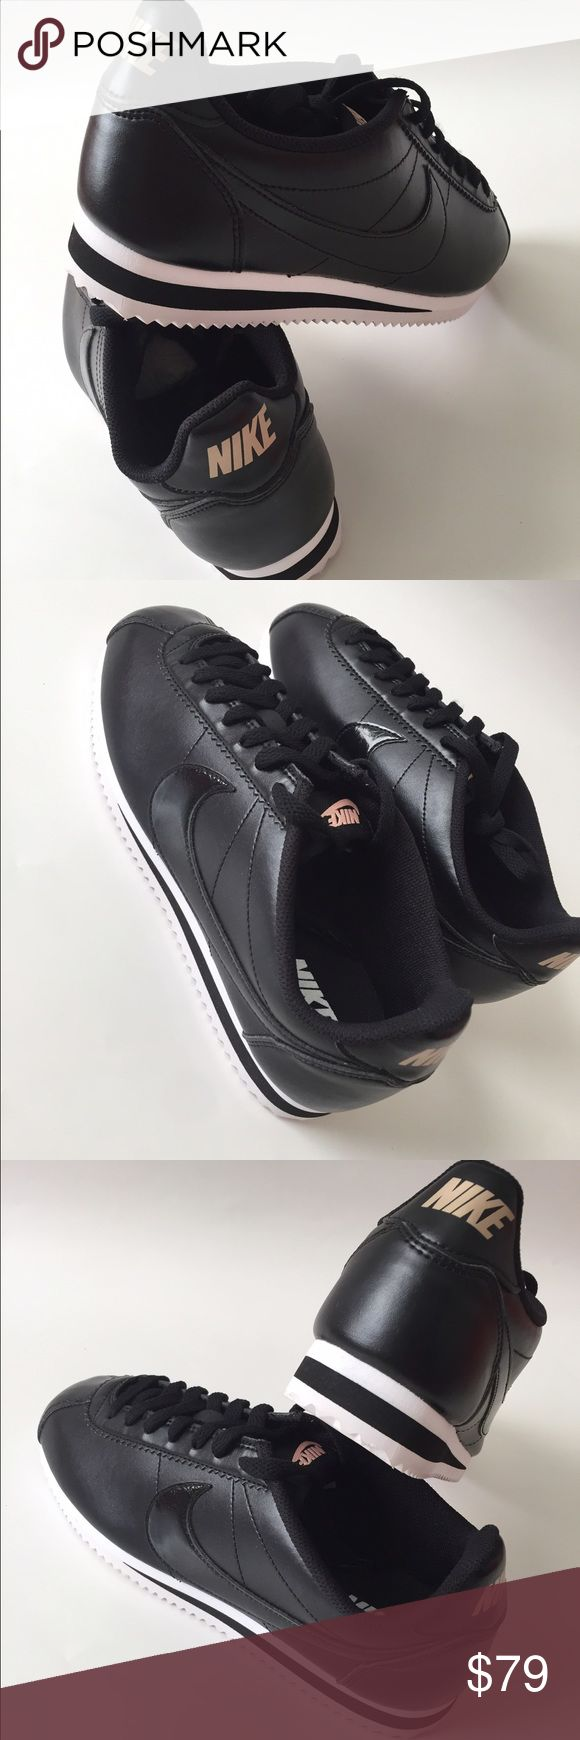 Nike Classic Cortez Leather Brand new women's Nike classic Cortez size 9.0. No trades, no low balling. MSRP$100 Nike Shoes Athletic Shoes